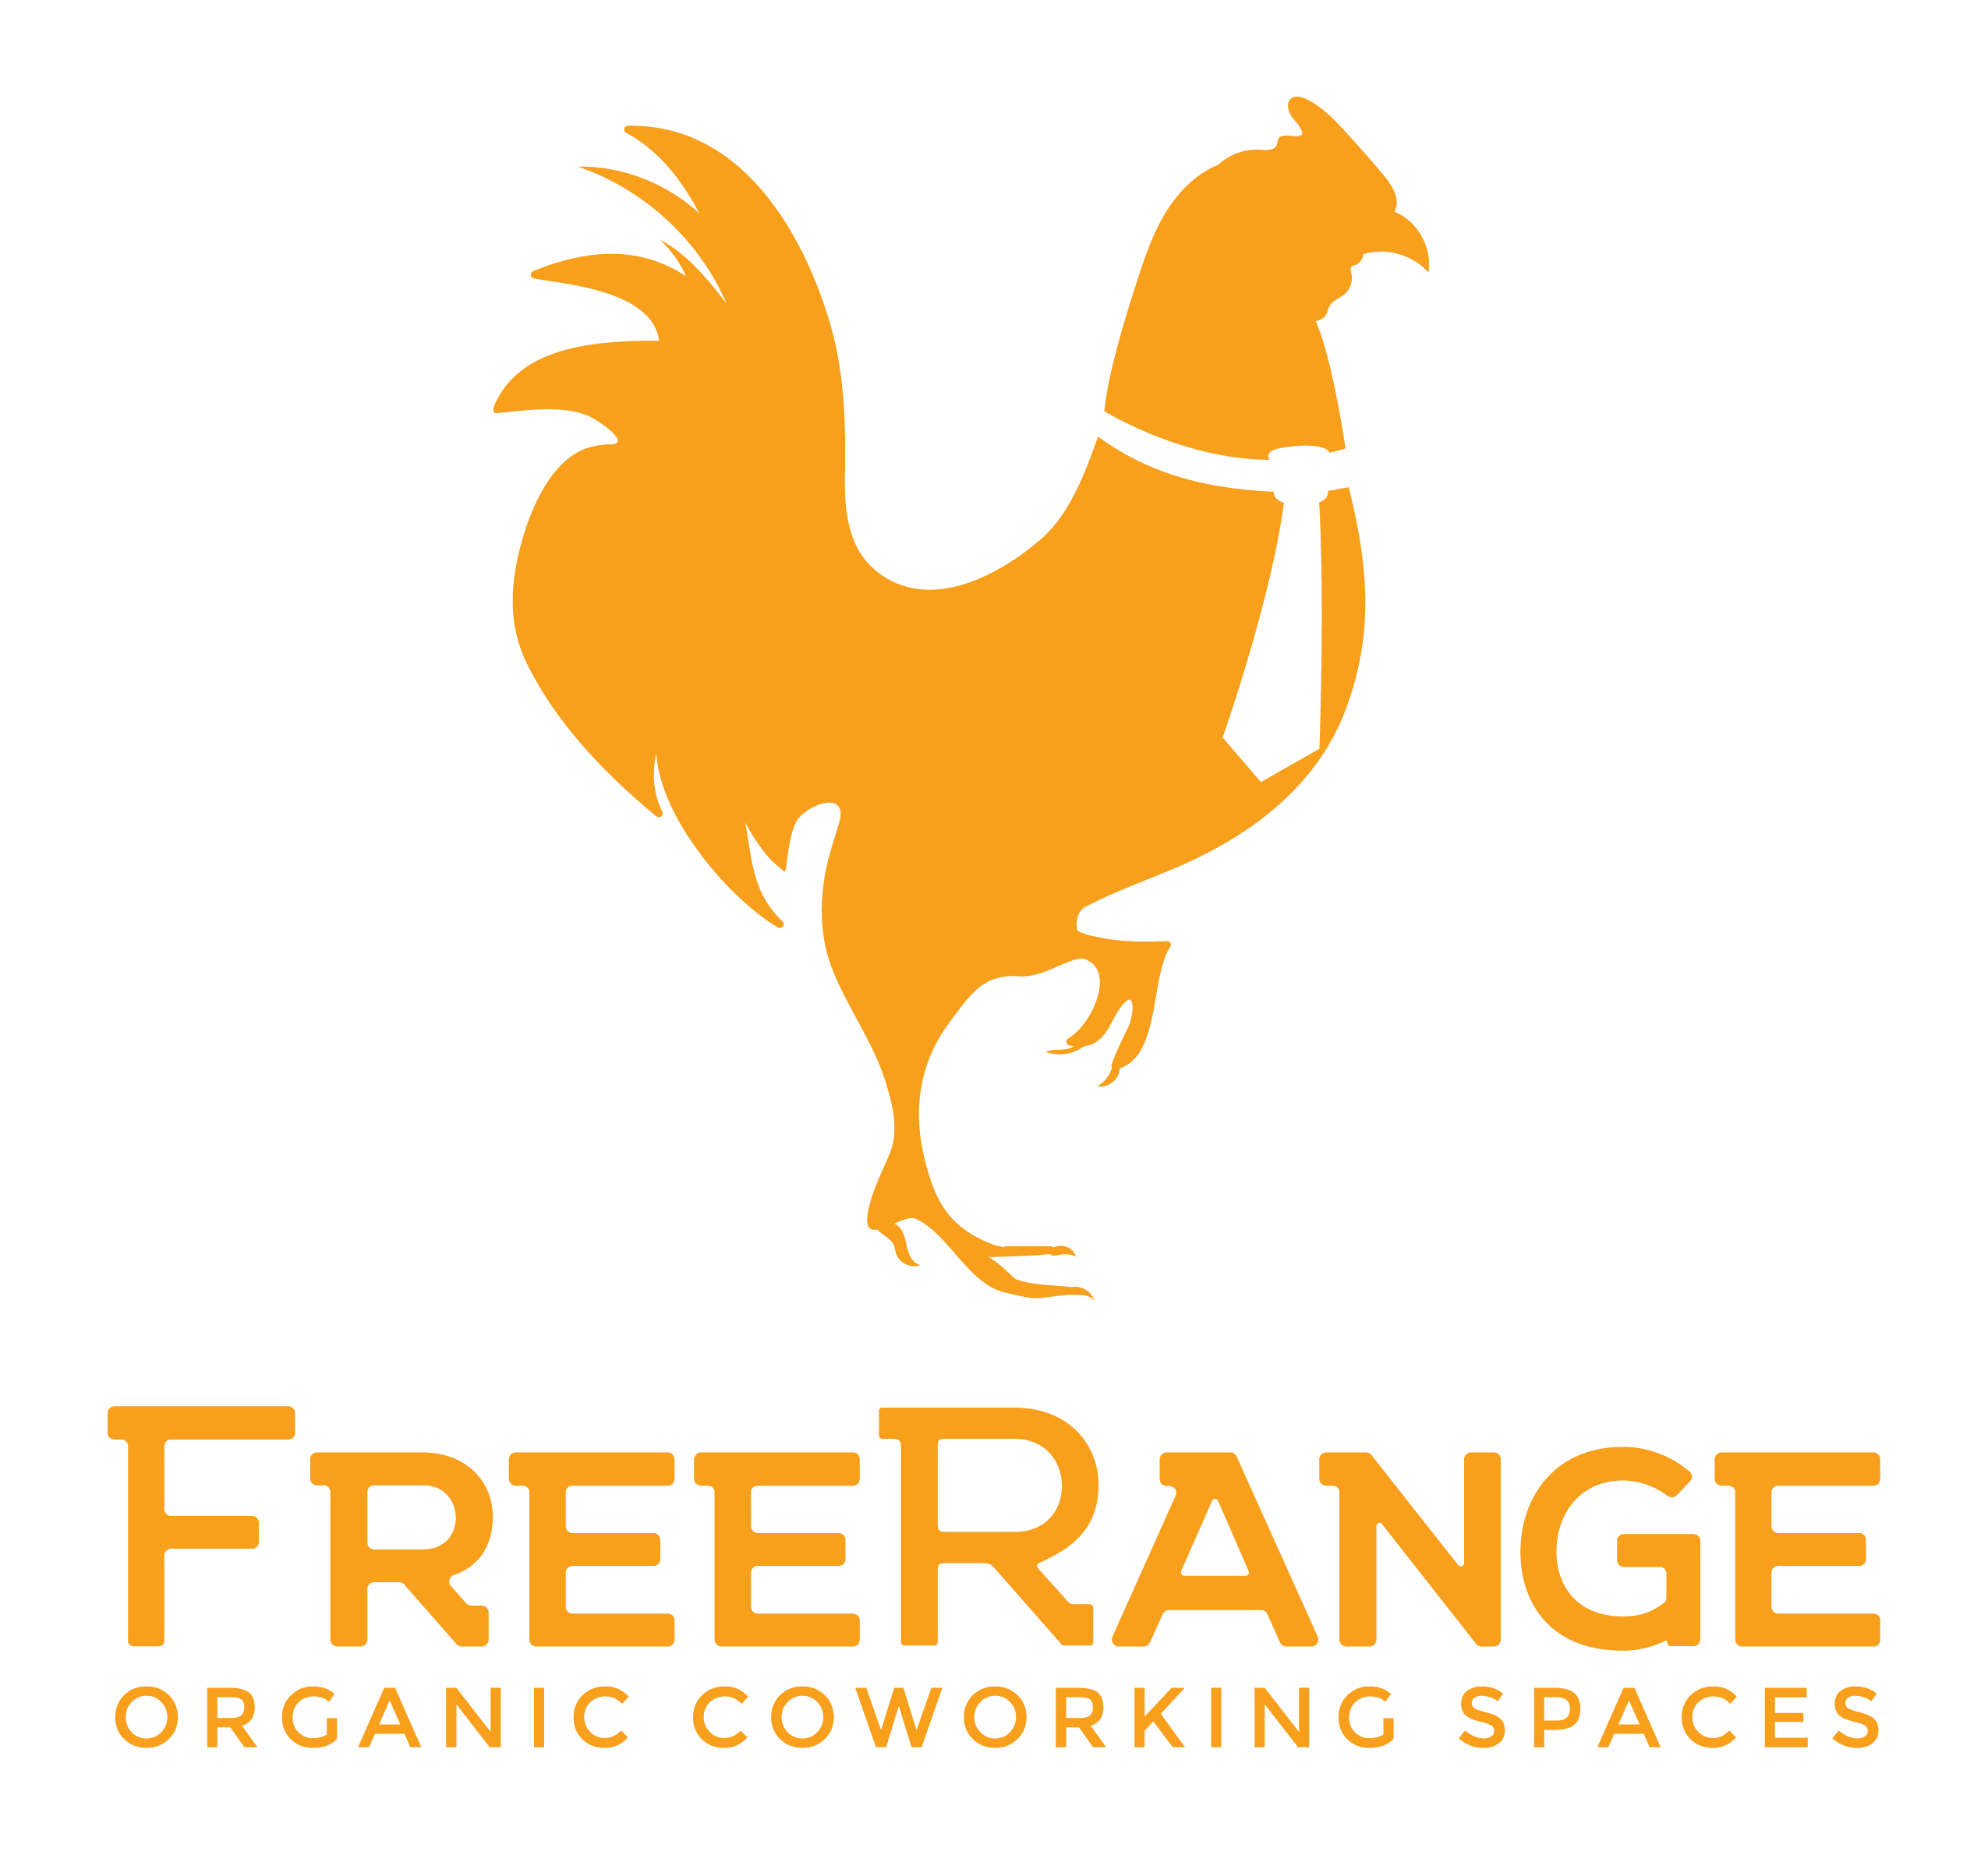 Make an awesome logo for a coworking space!  Heck Yeah!